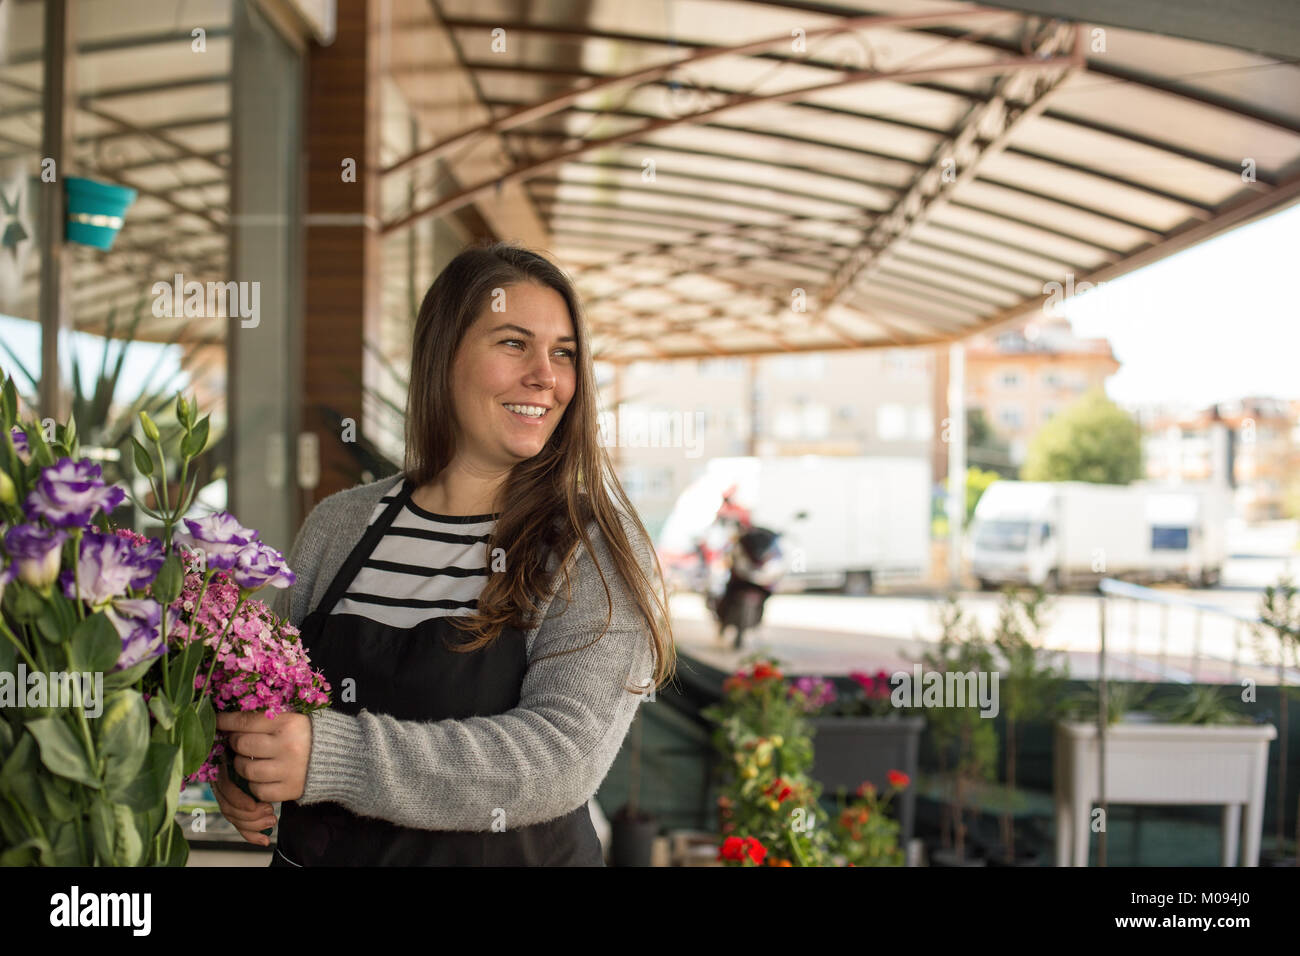 Small business concept. Smilng female florist picking flowers in a flower shop. - Stock Image